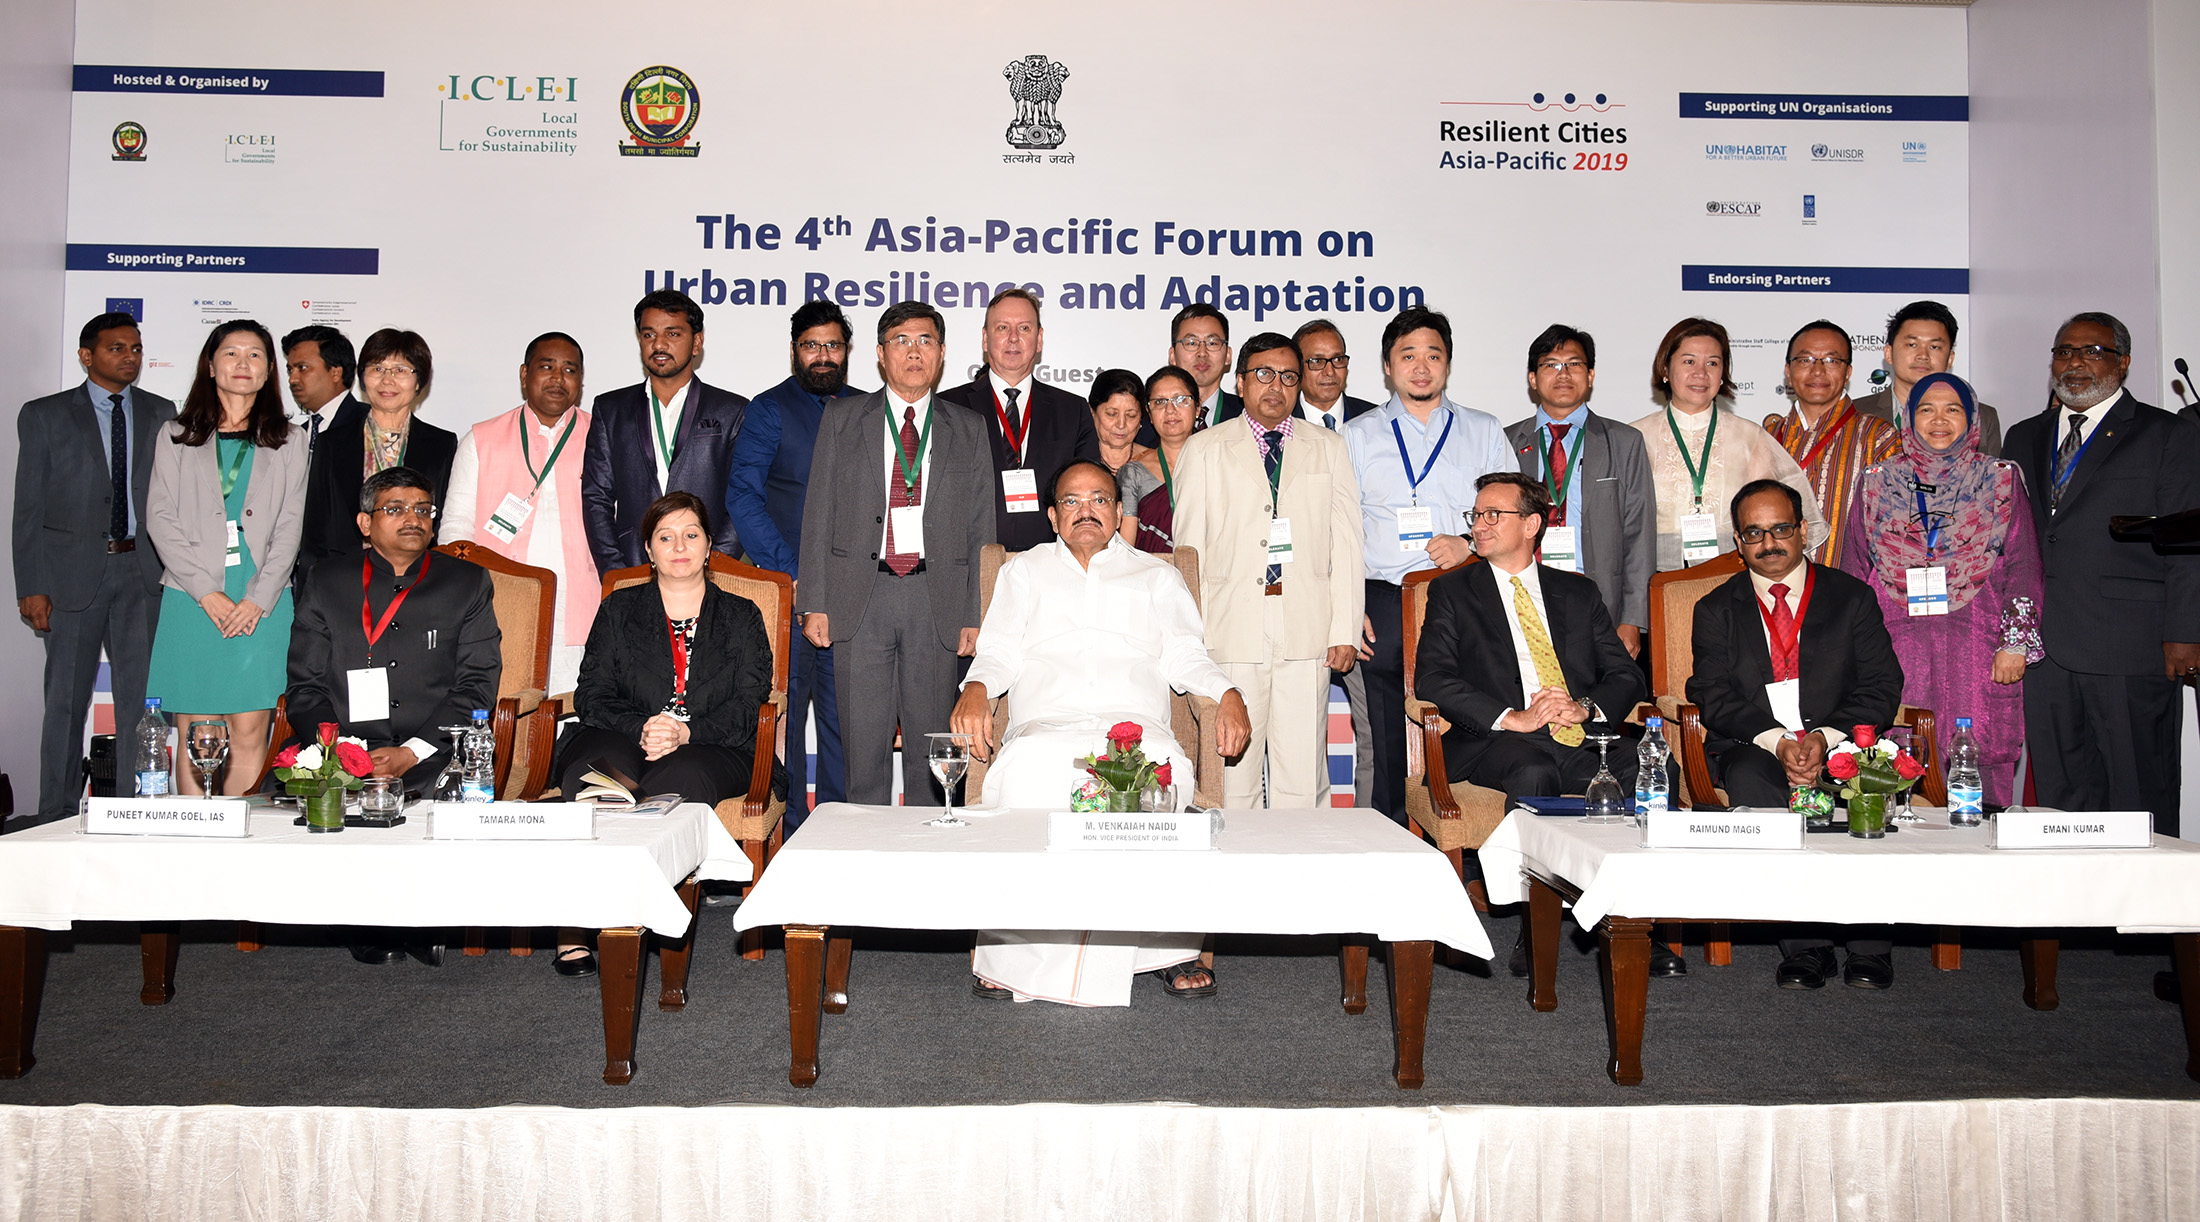 The Vice President, Shri M. Venkaiah Naidu with a group of participants at the 4th Resilient Cities Asia-Pacific Congress 2019, organized by the International Council for Local Environmental Initiatives, in New Delhi on April 15, 2019.